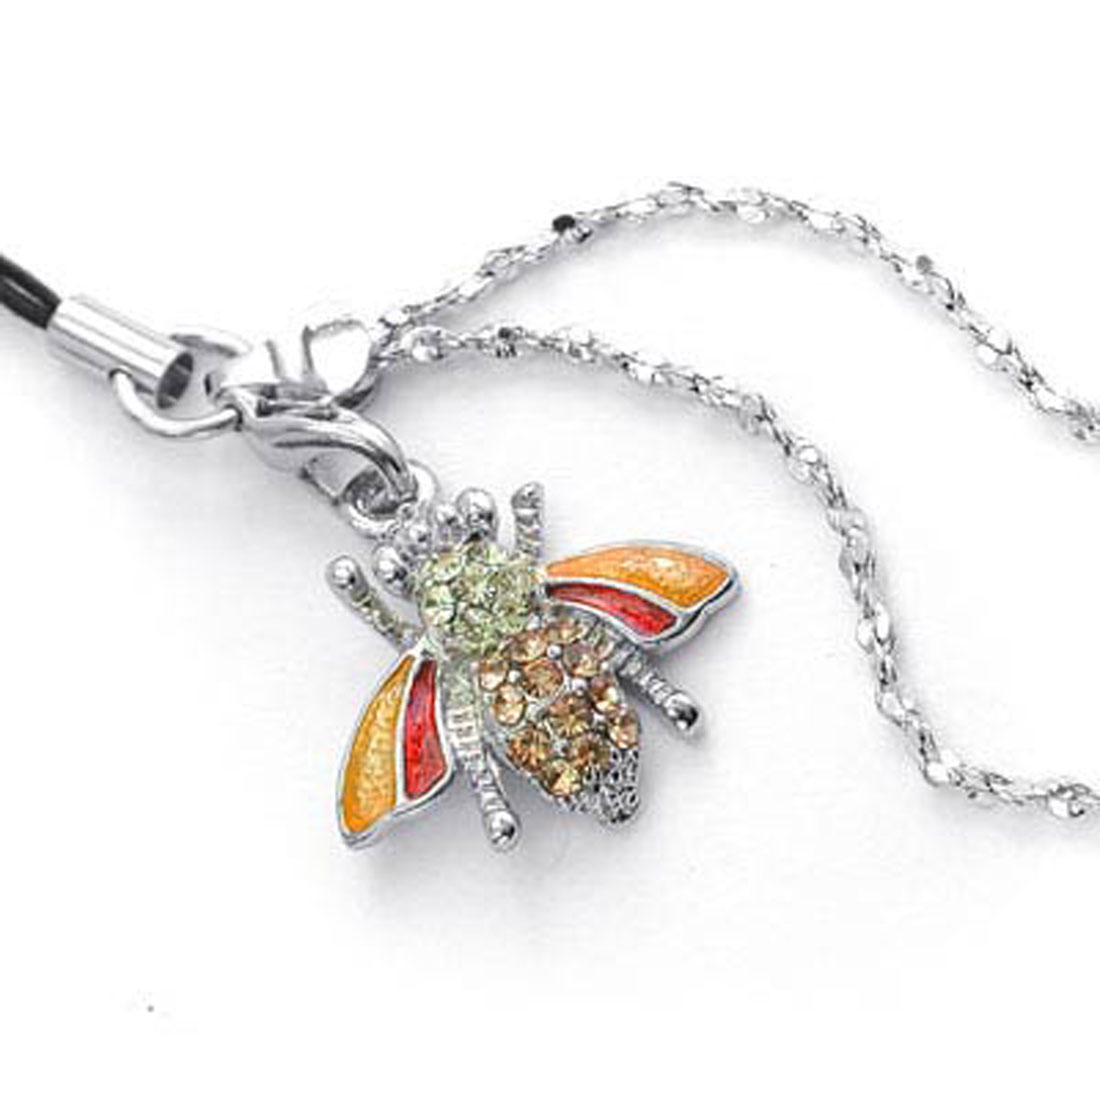 Fashion Jewelry Crytsal Phone String Strap - Honey Bee